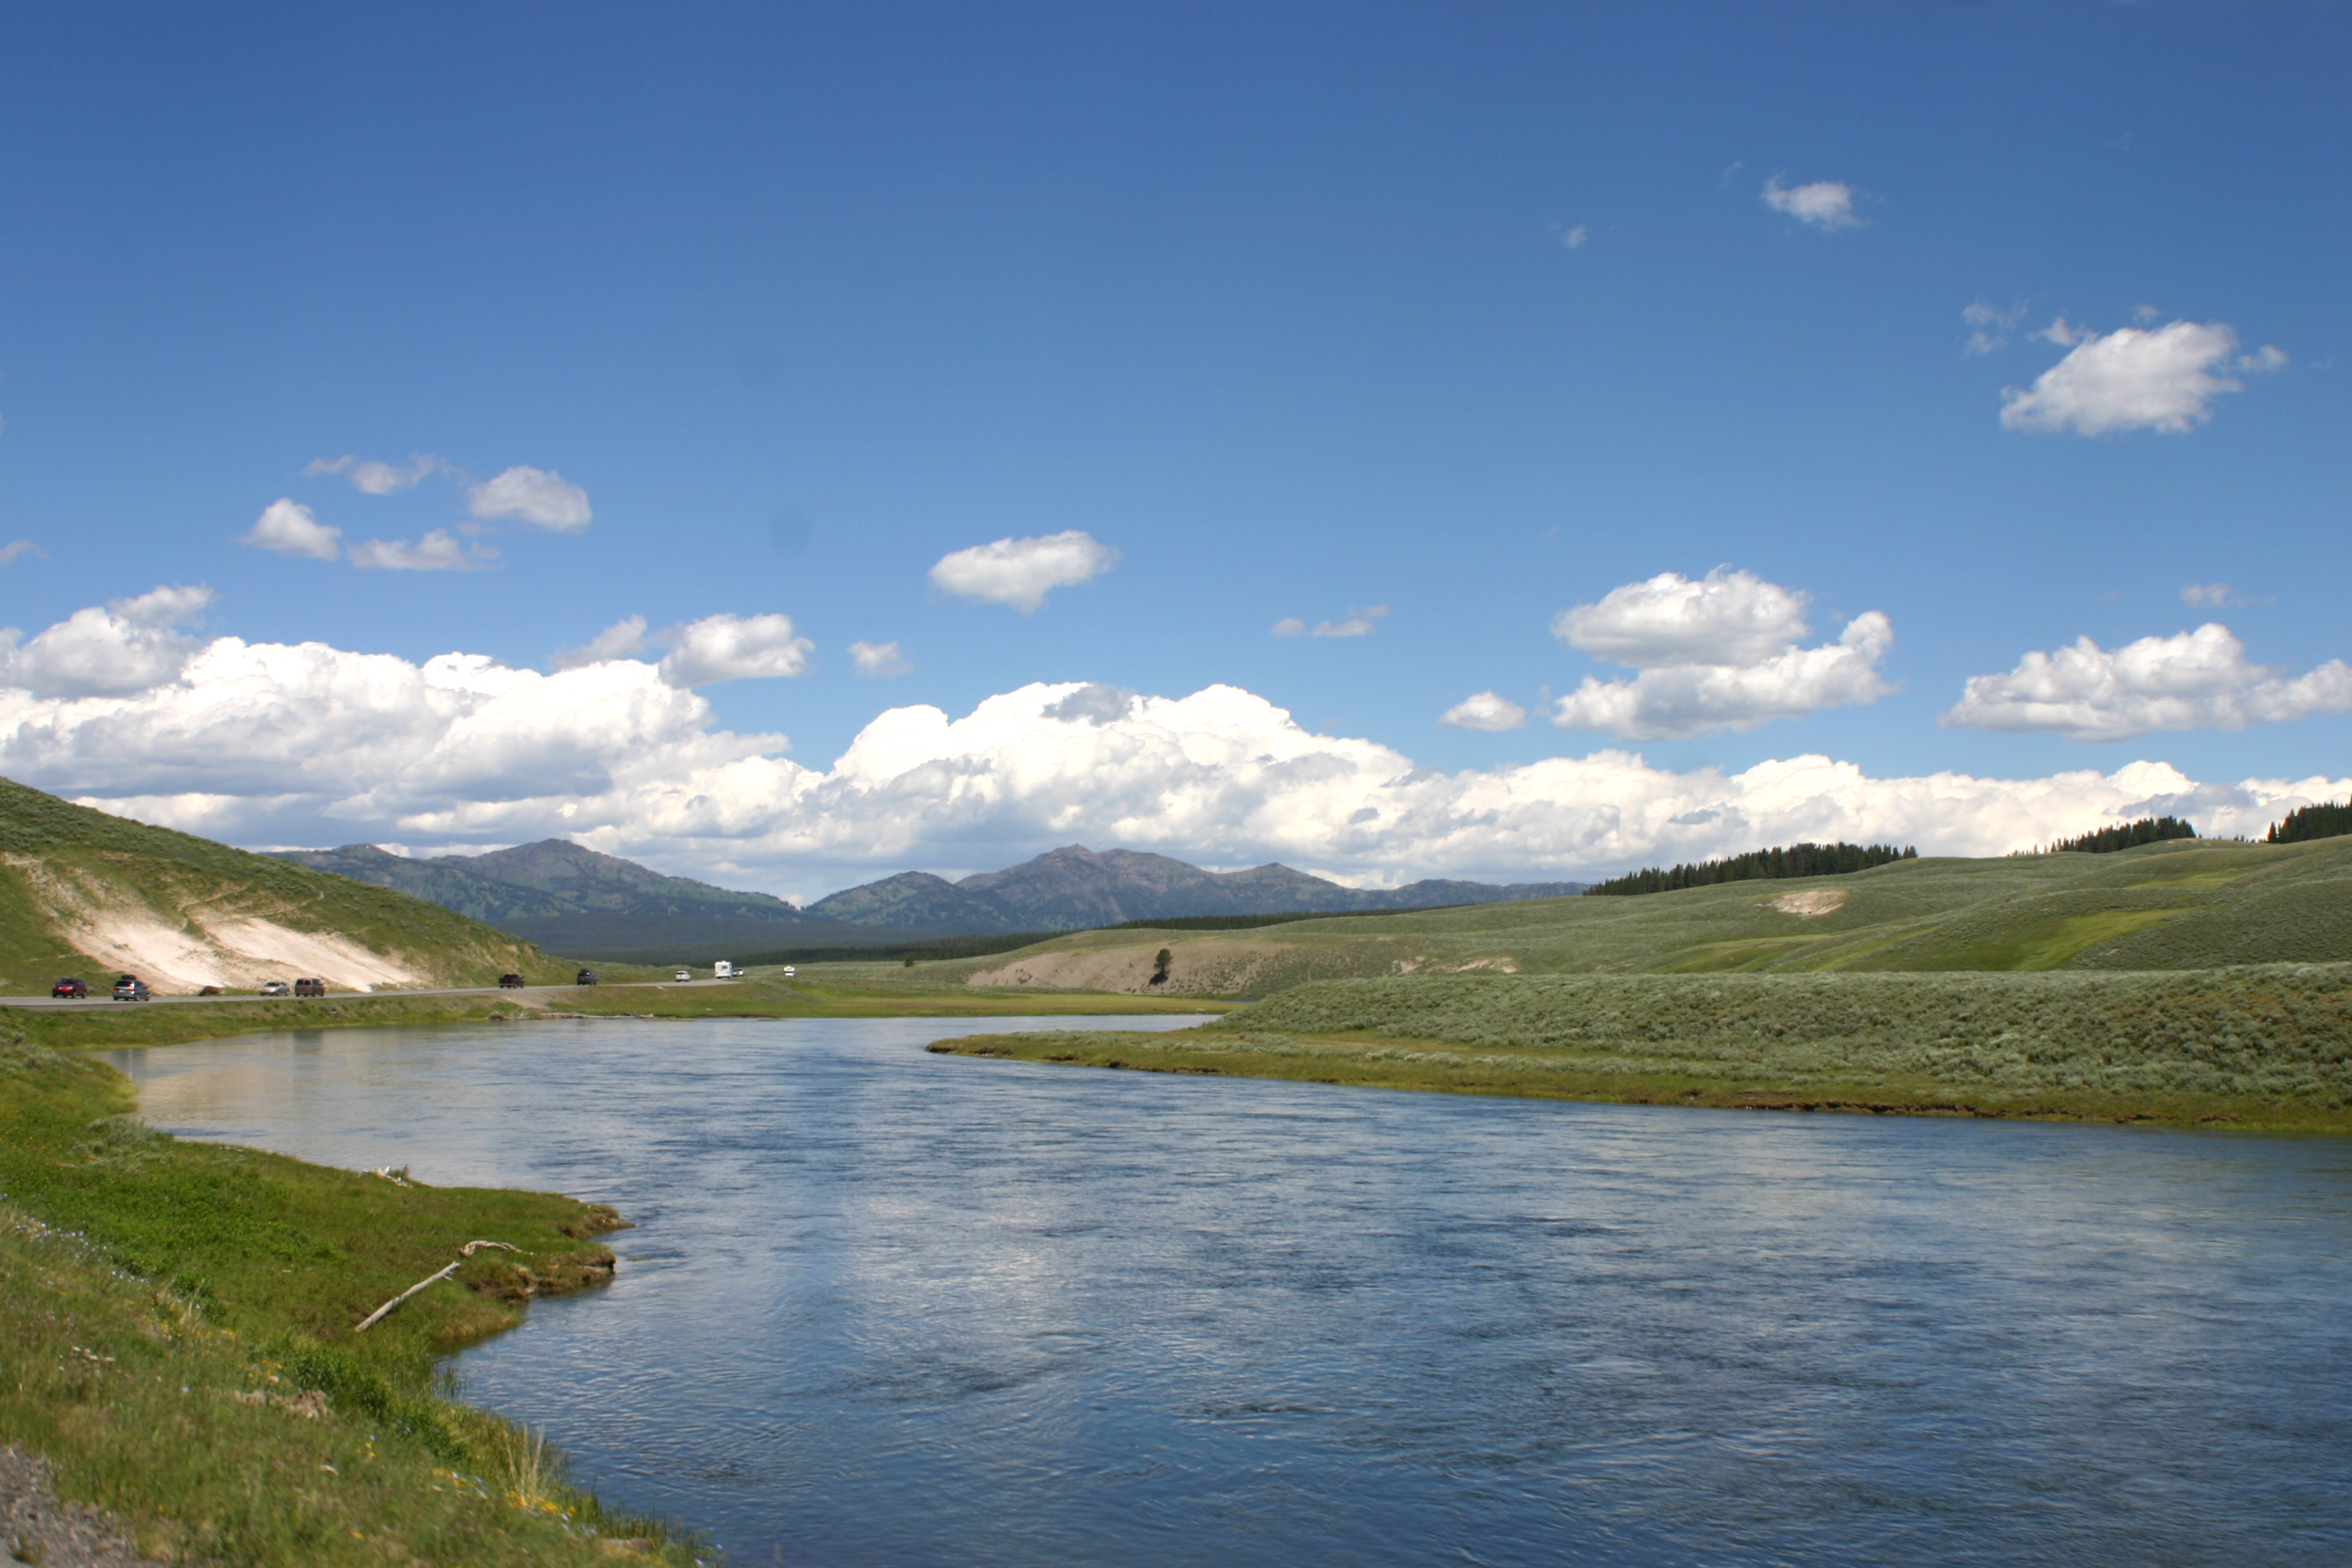 The Prairie and River